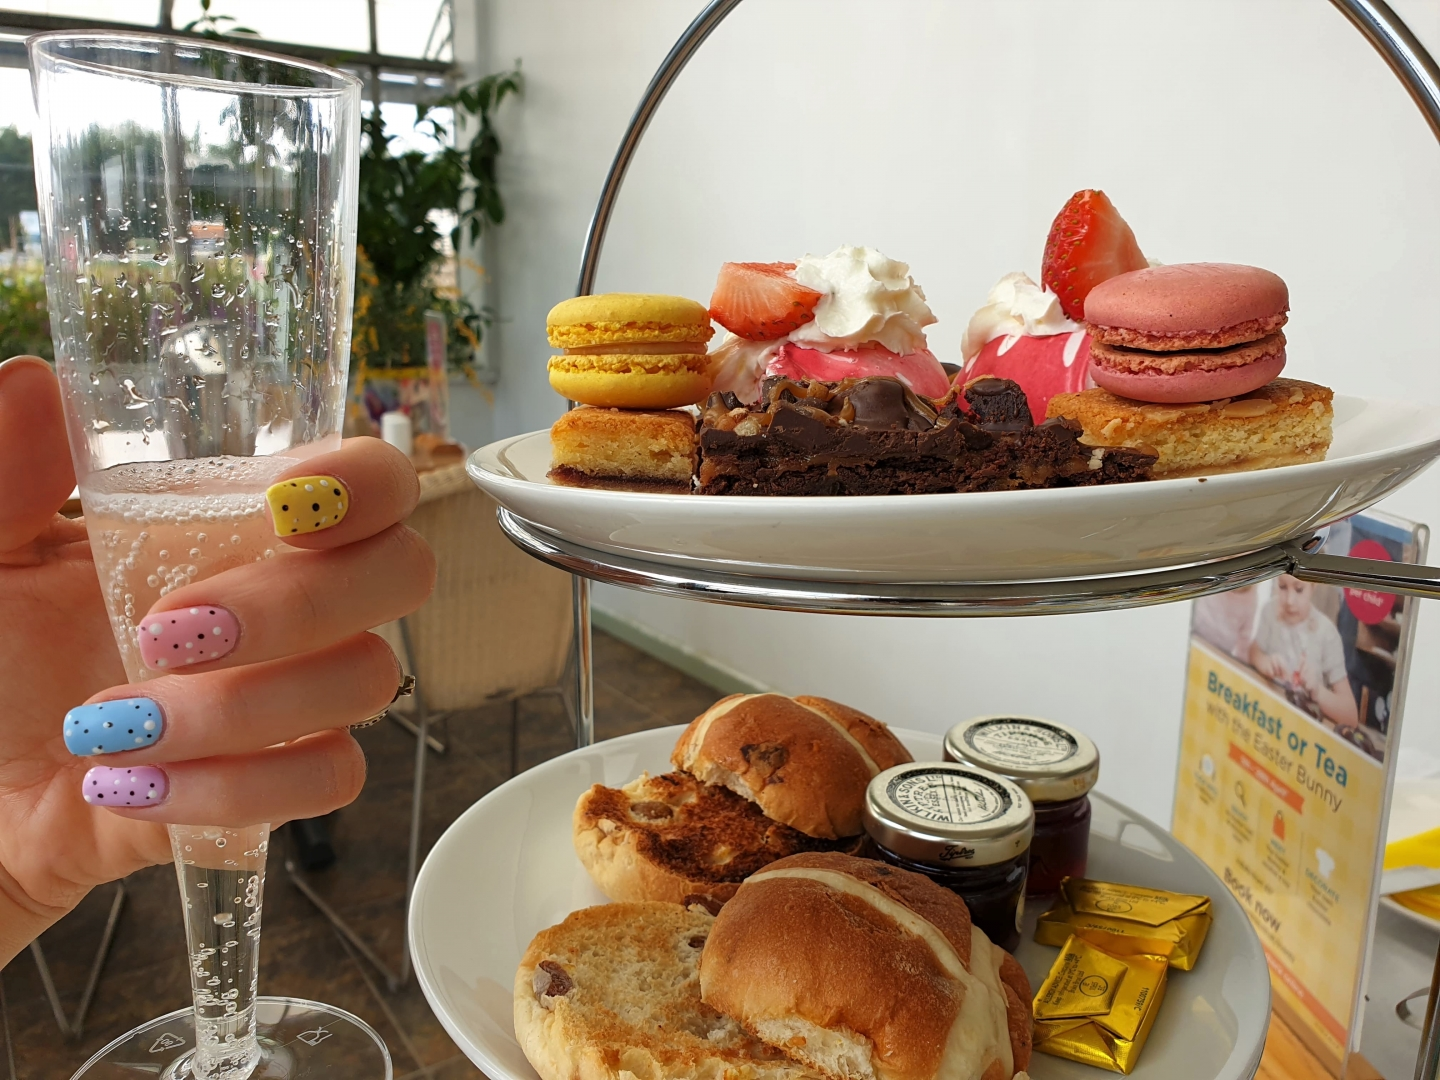 Easter afternoon tea with prosecco at Wyevale Garden Centre in Gillingham